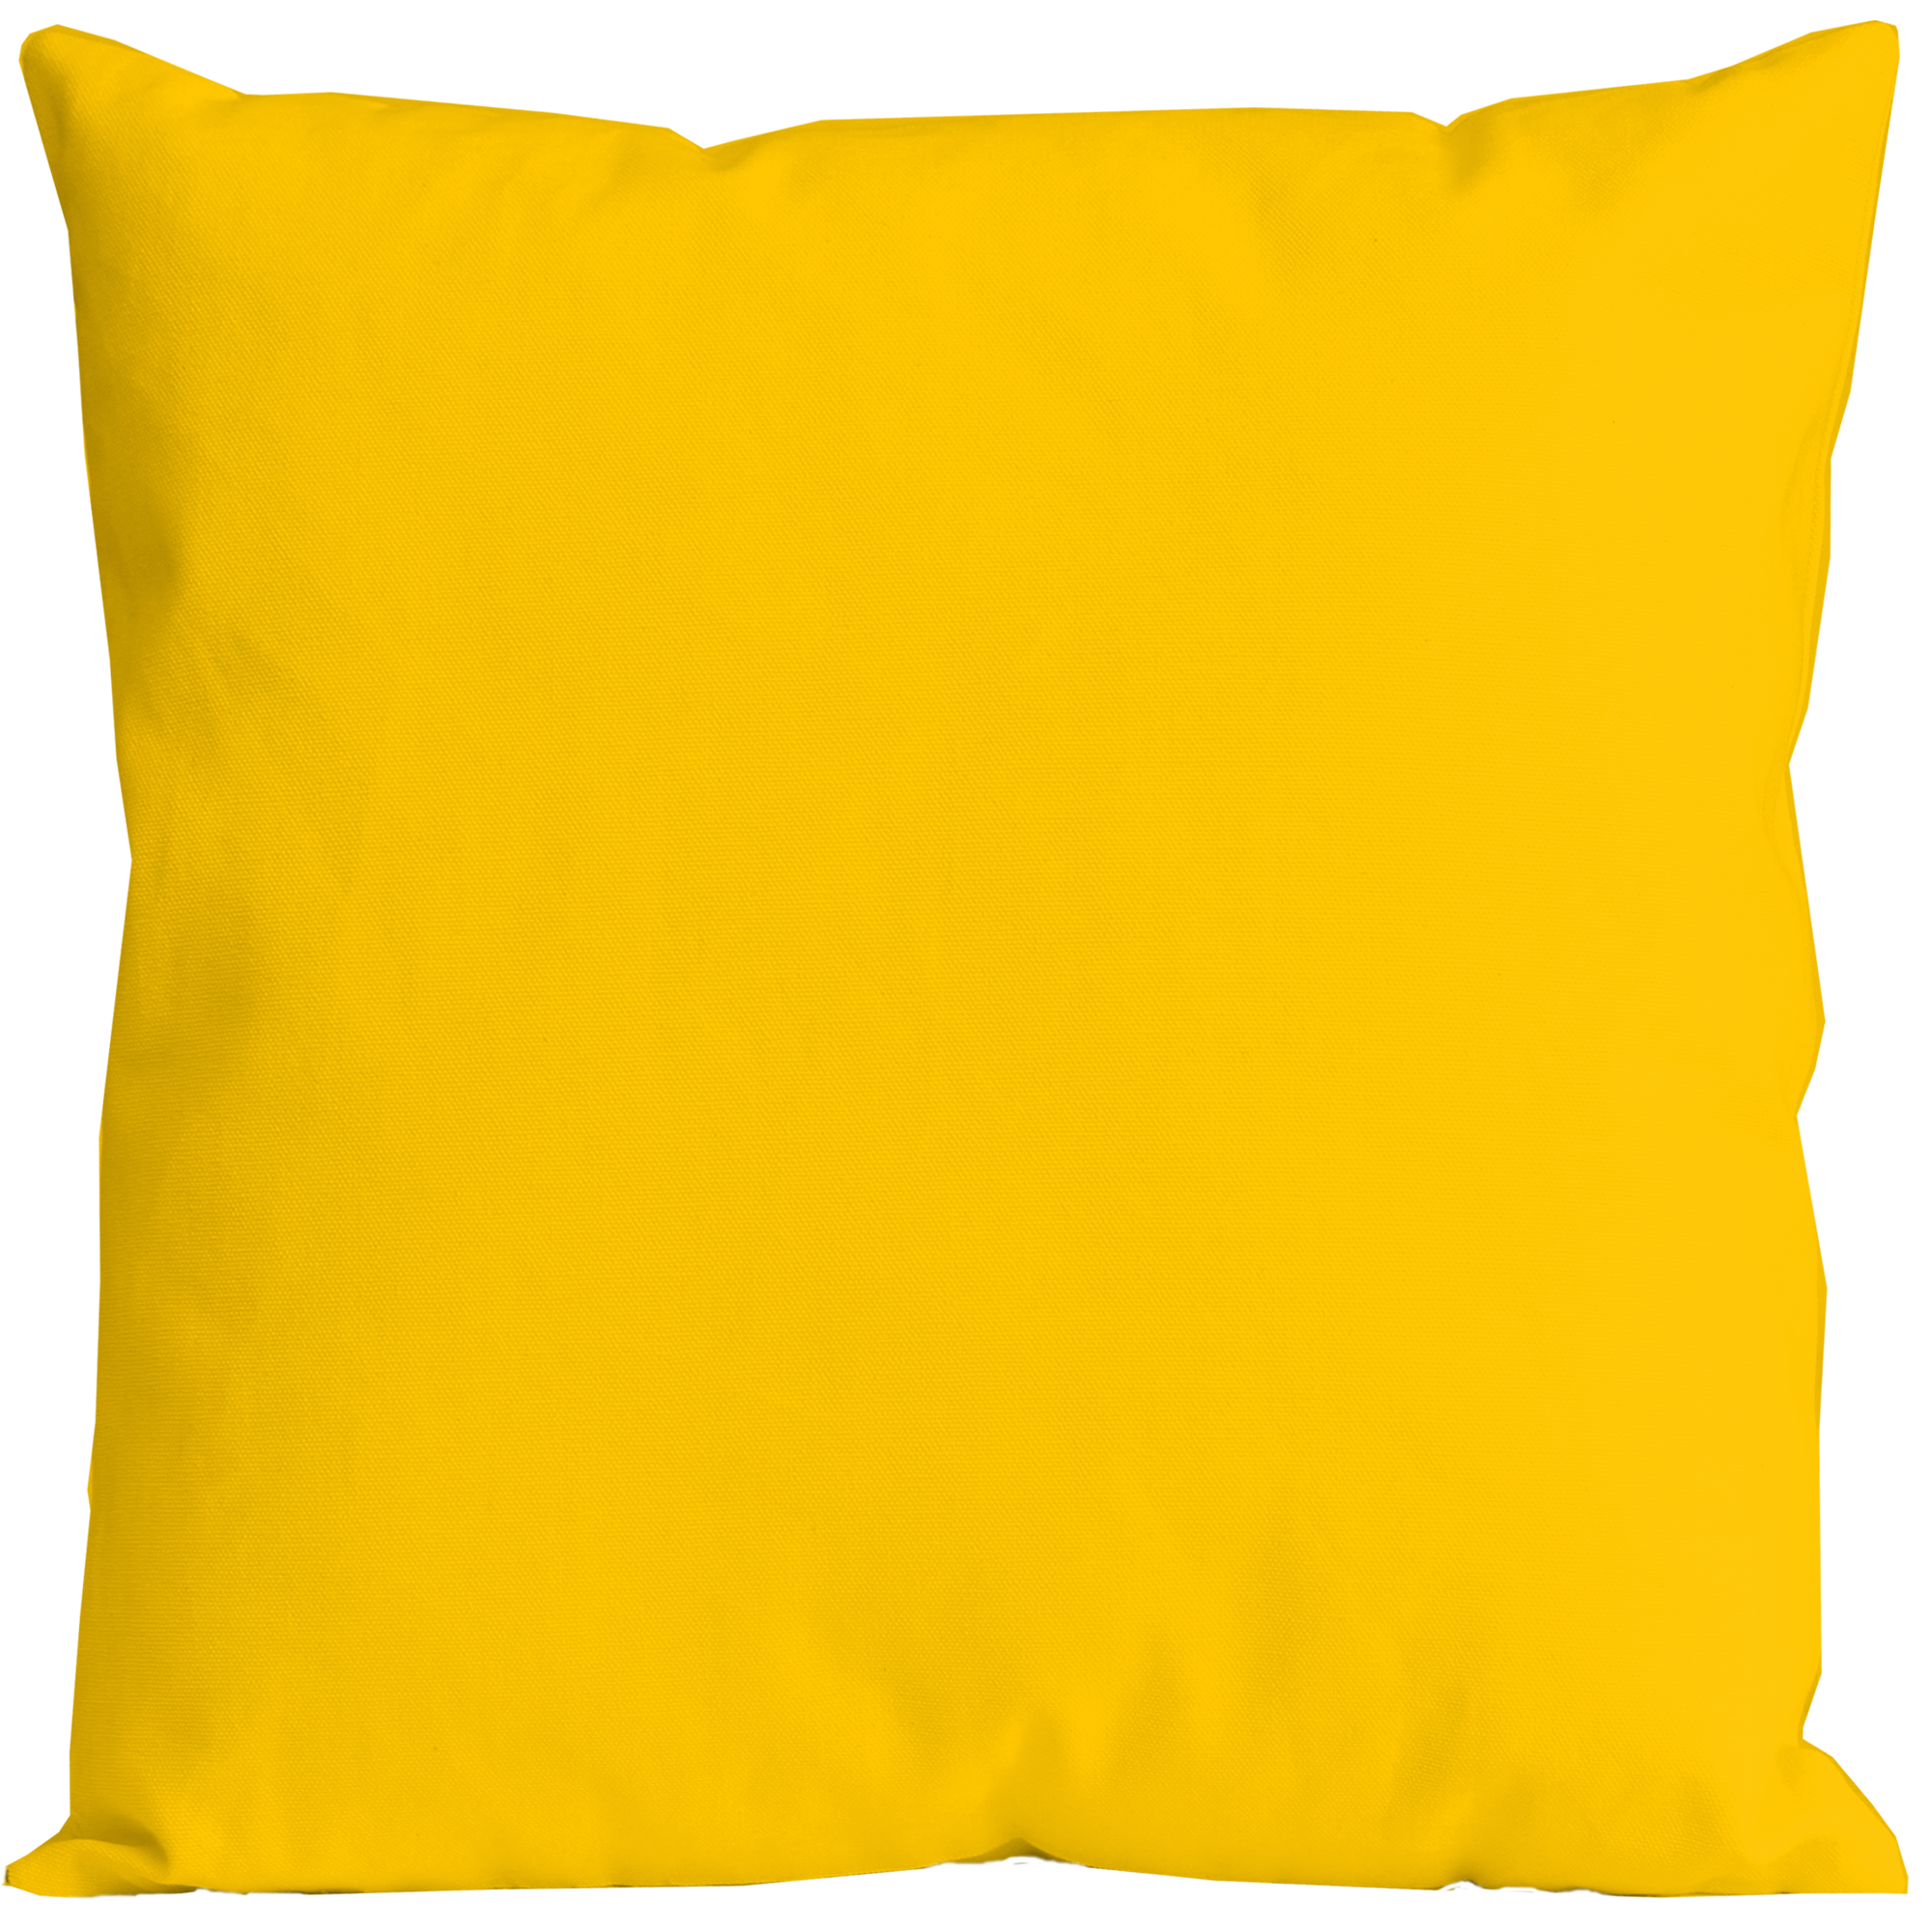 Png images free download. Pillow clipart sham